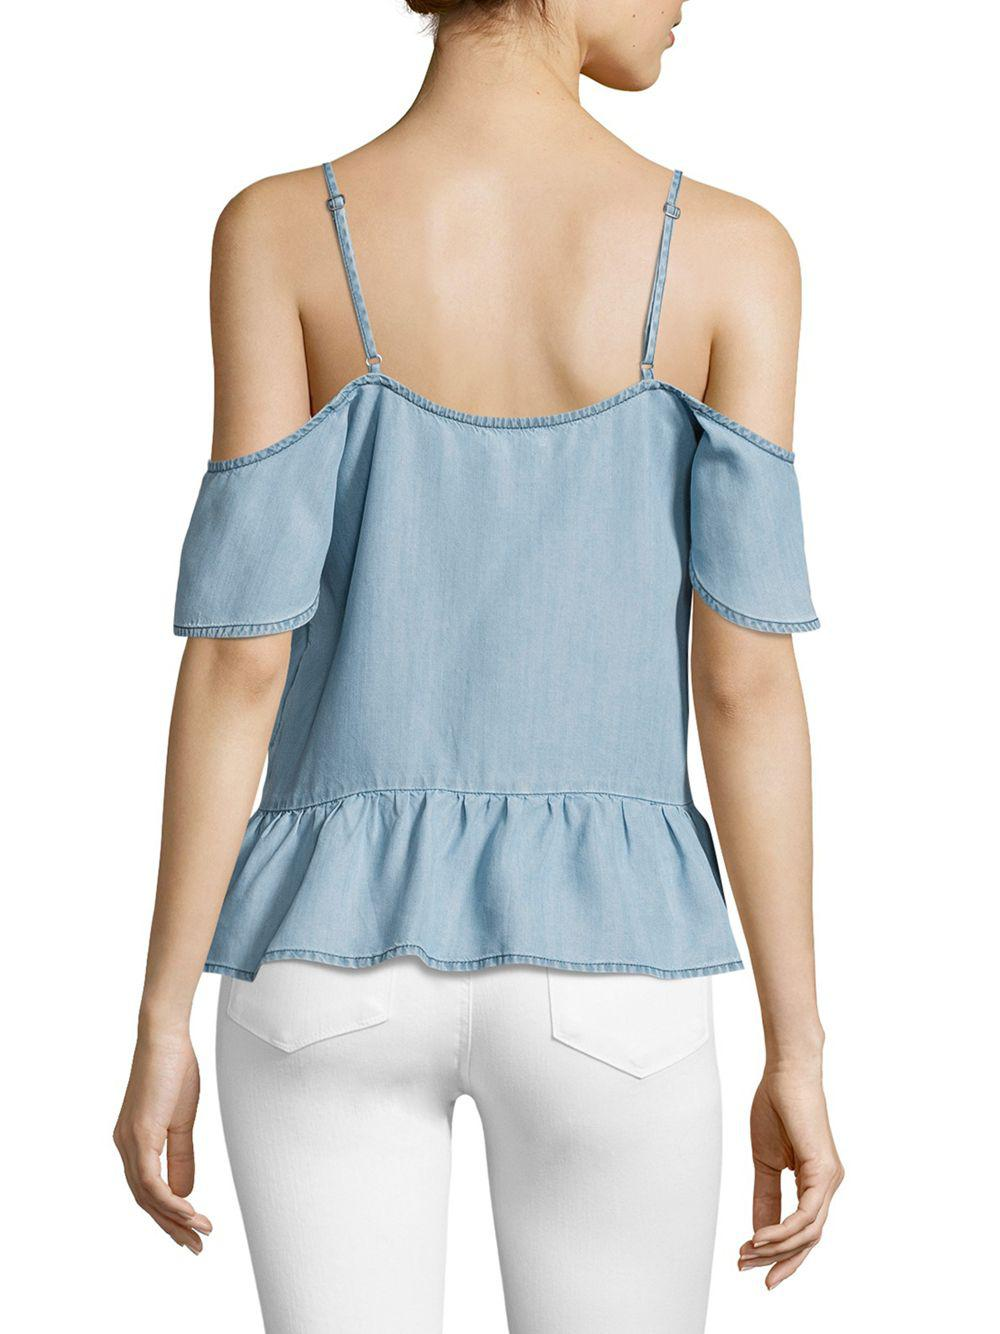 c4c61d14712504 Lyst - PAIGE Mitzi Chambray Off-the-shoulder Top in Blue - Save 48%